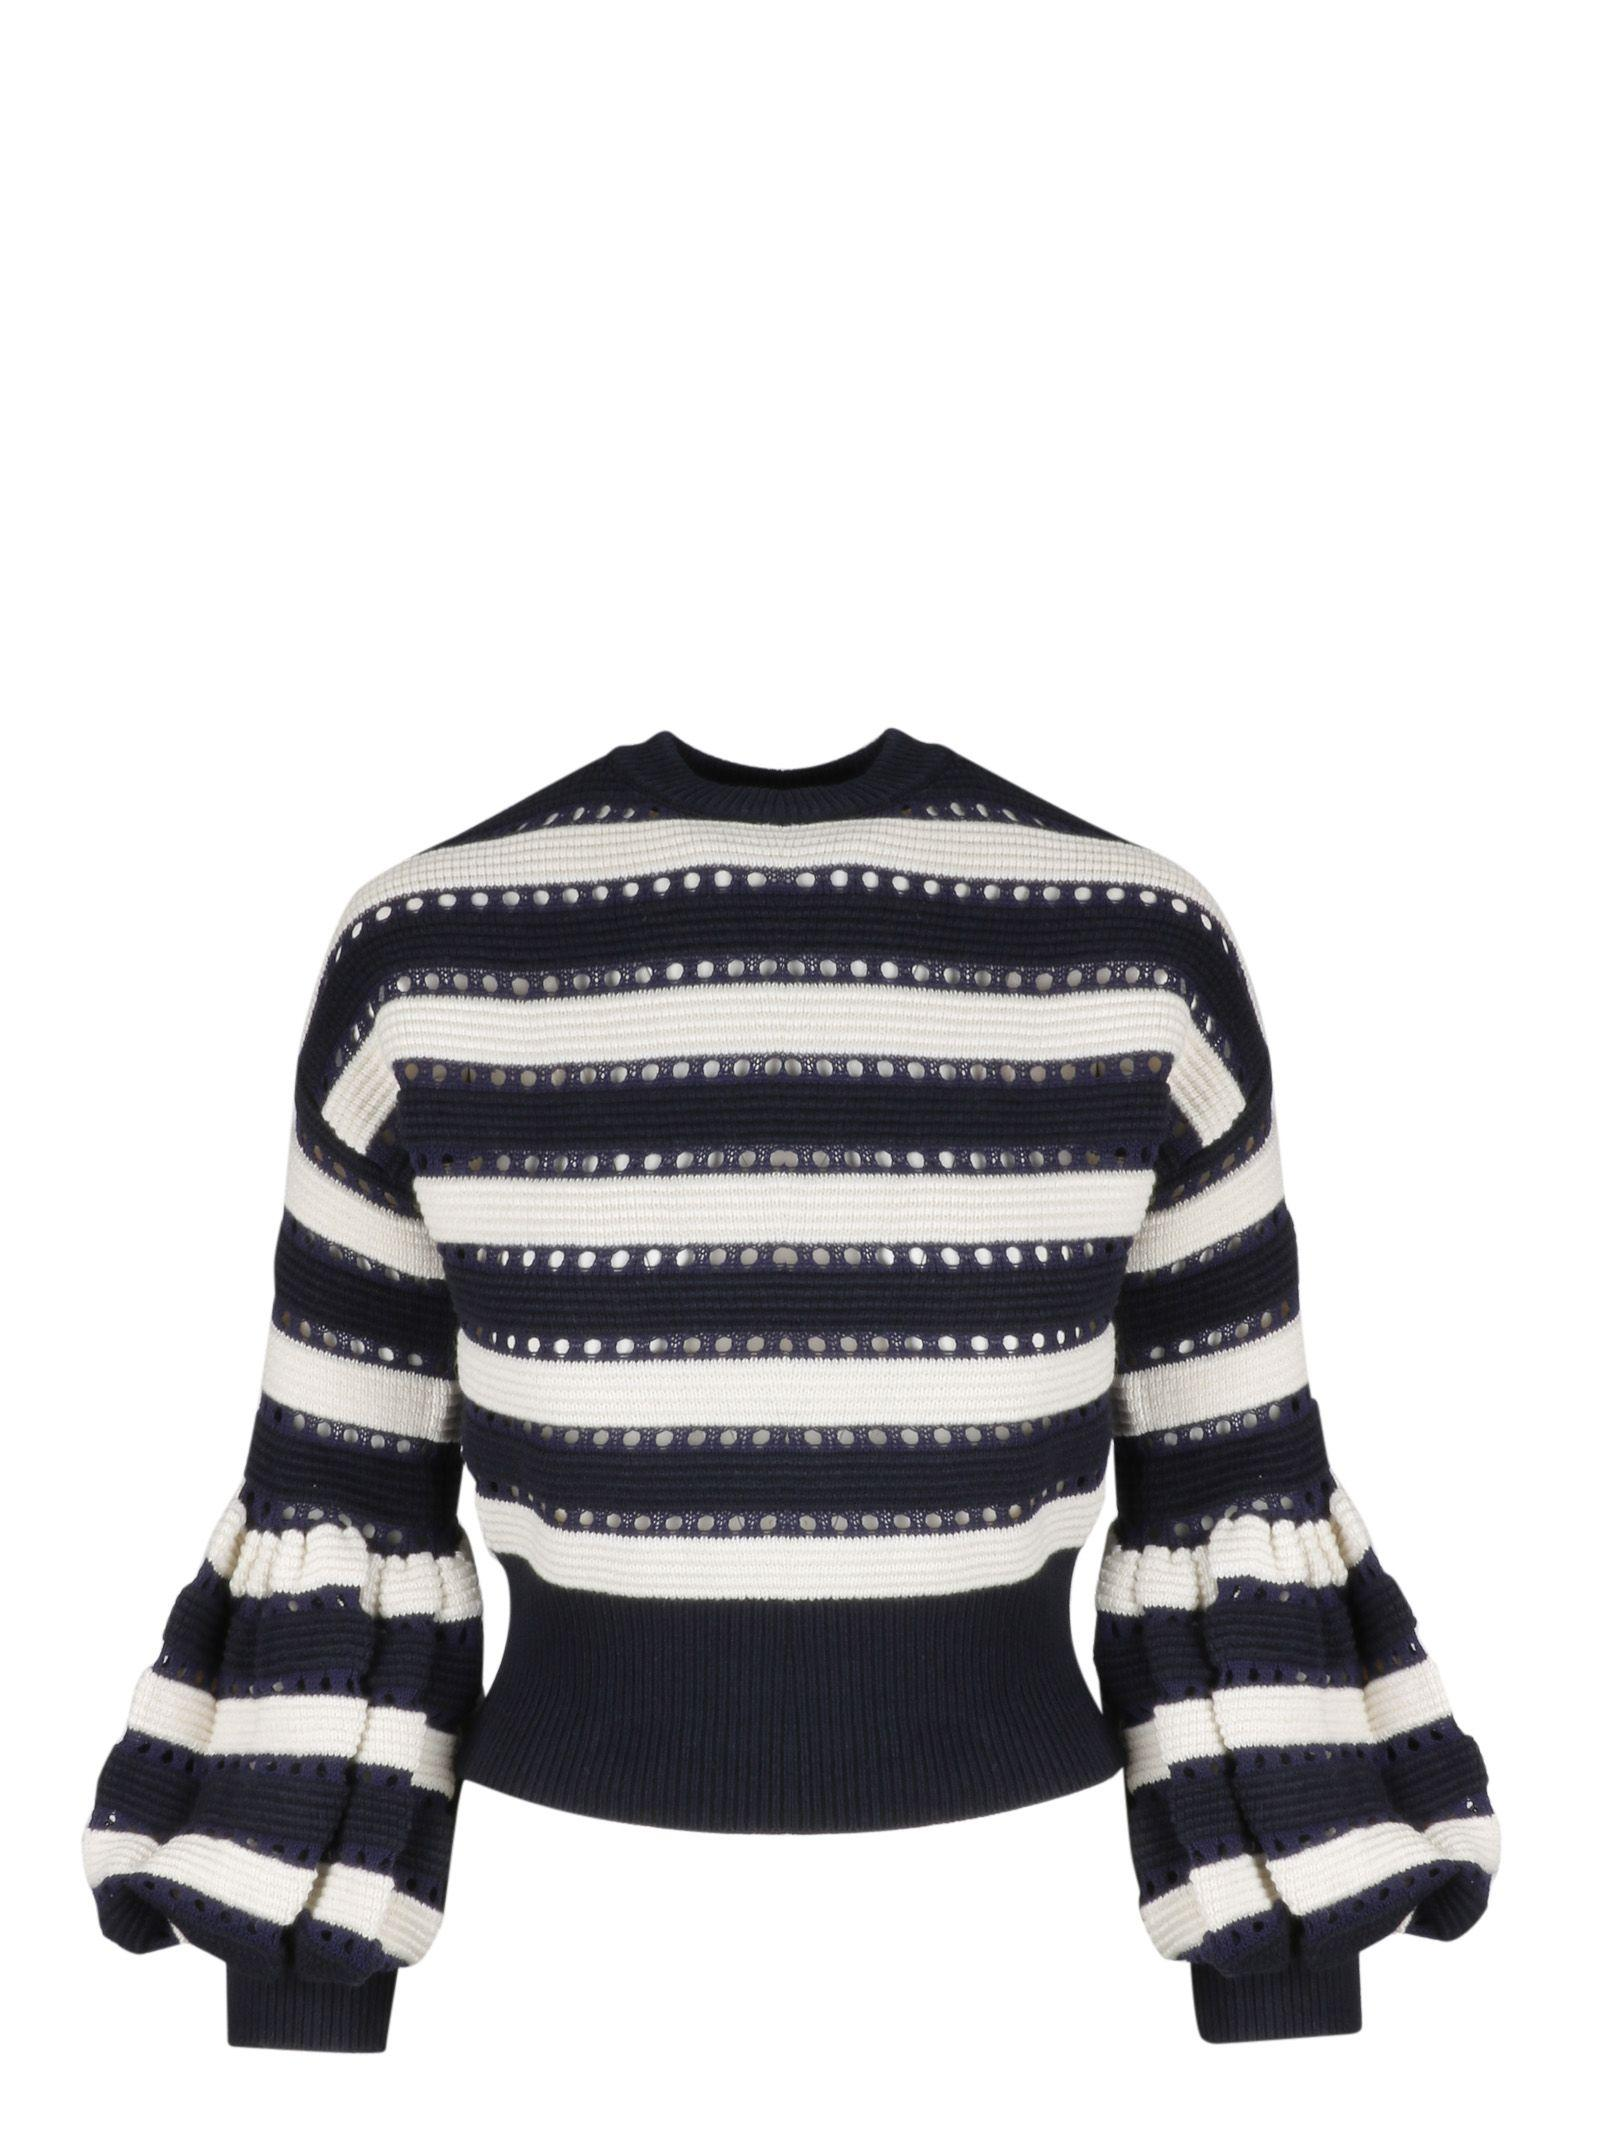 4390630849b8 Self-Portrait Striped Open-Knit Cotton And Wool-Blend Sweater In Navy